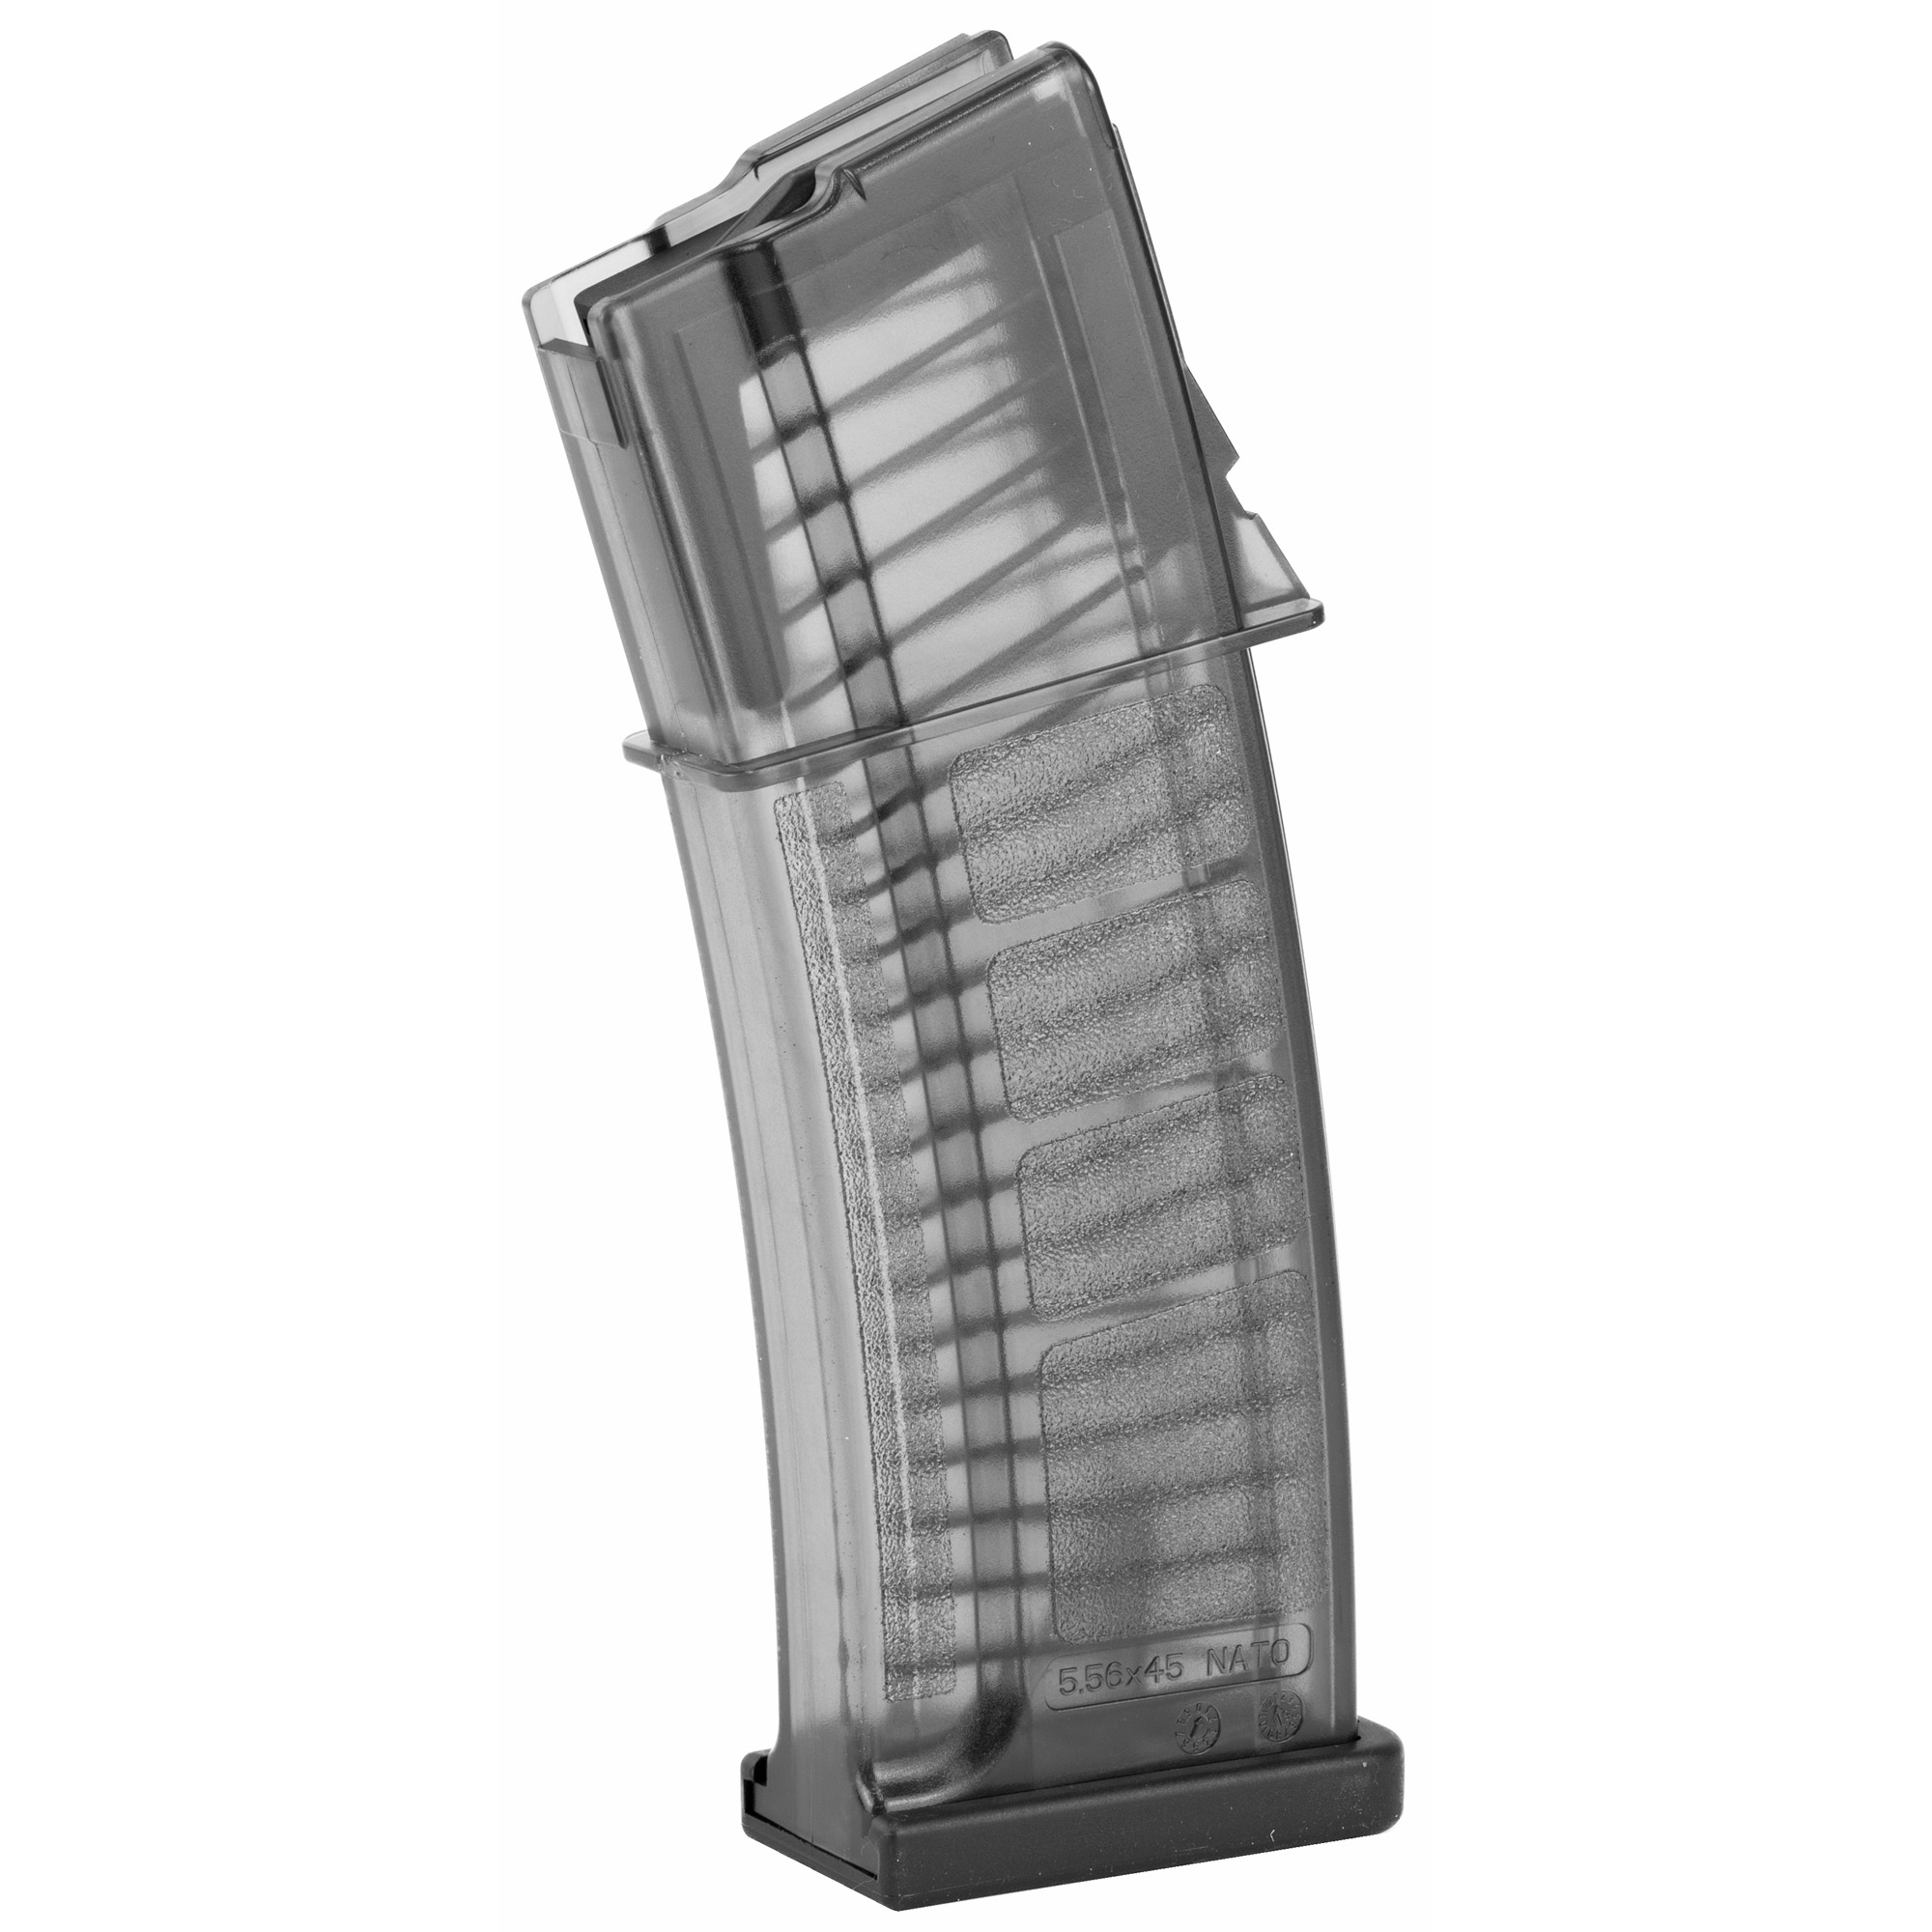 This CZ factory OEM magazine features translucent polymer construction and is designed for reliable operation in the CZ 805 BREN Retro.